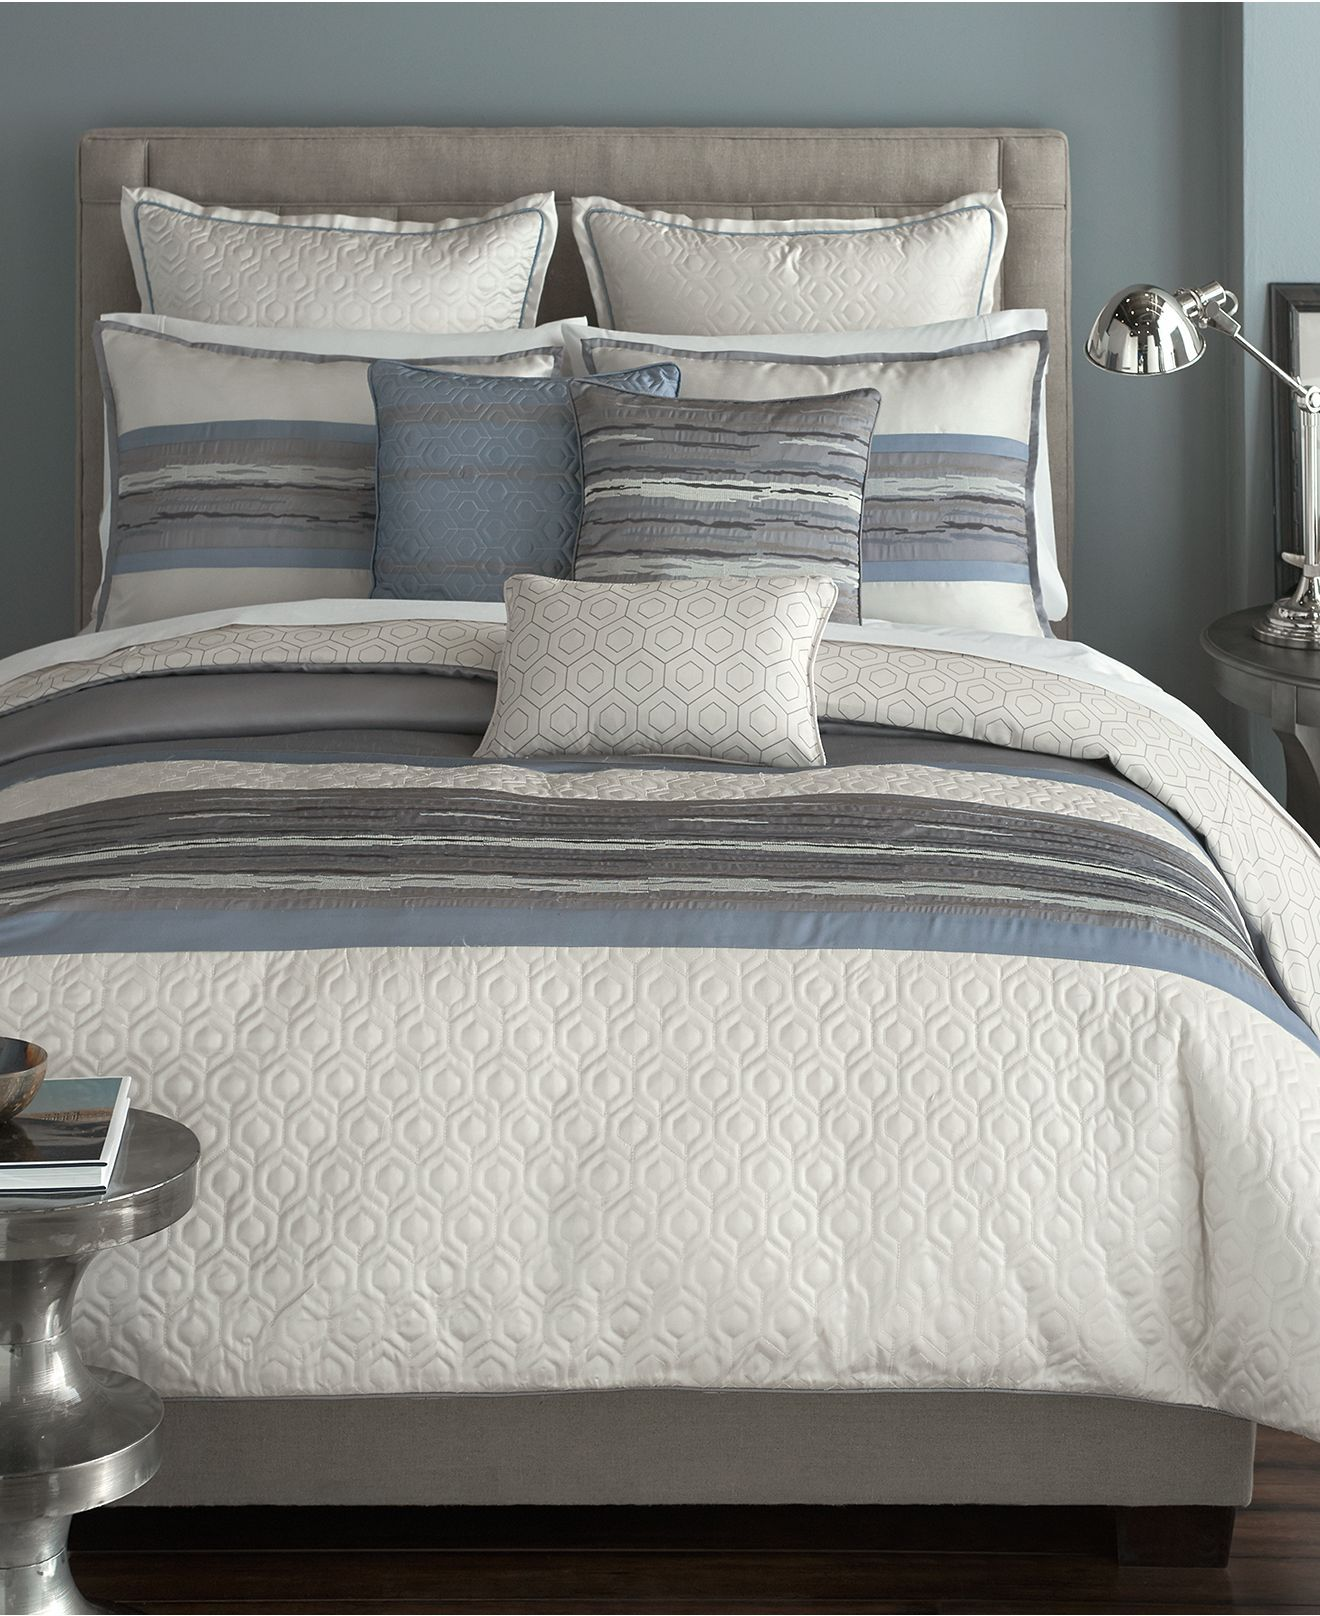 Love This For Staging Gender Neutral Bedding In Blues And Grays